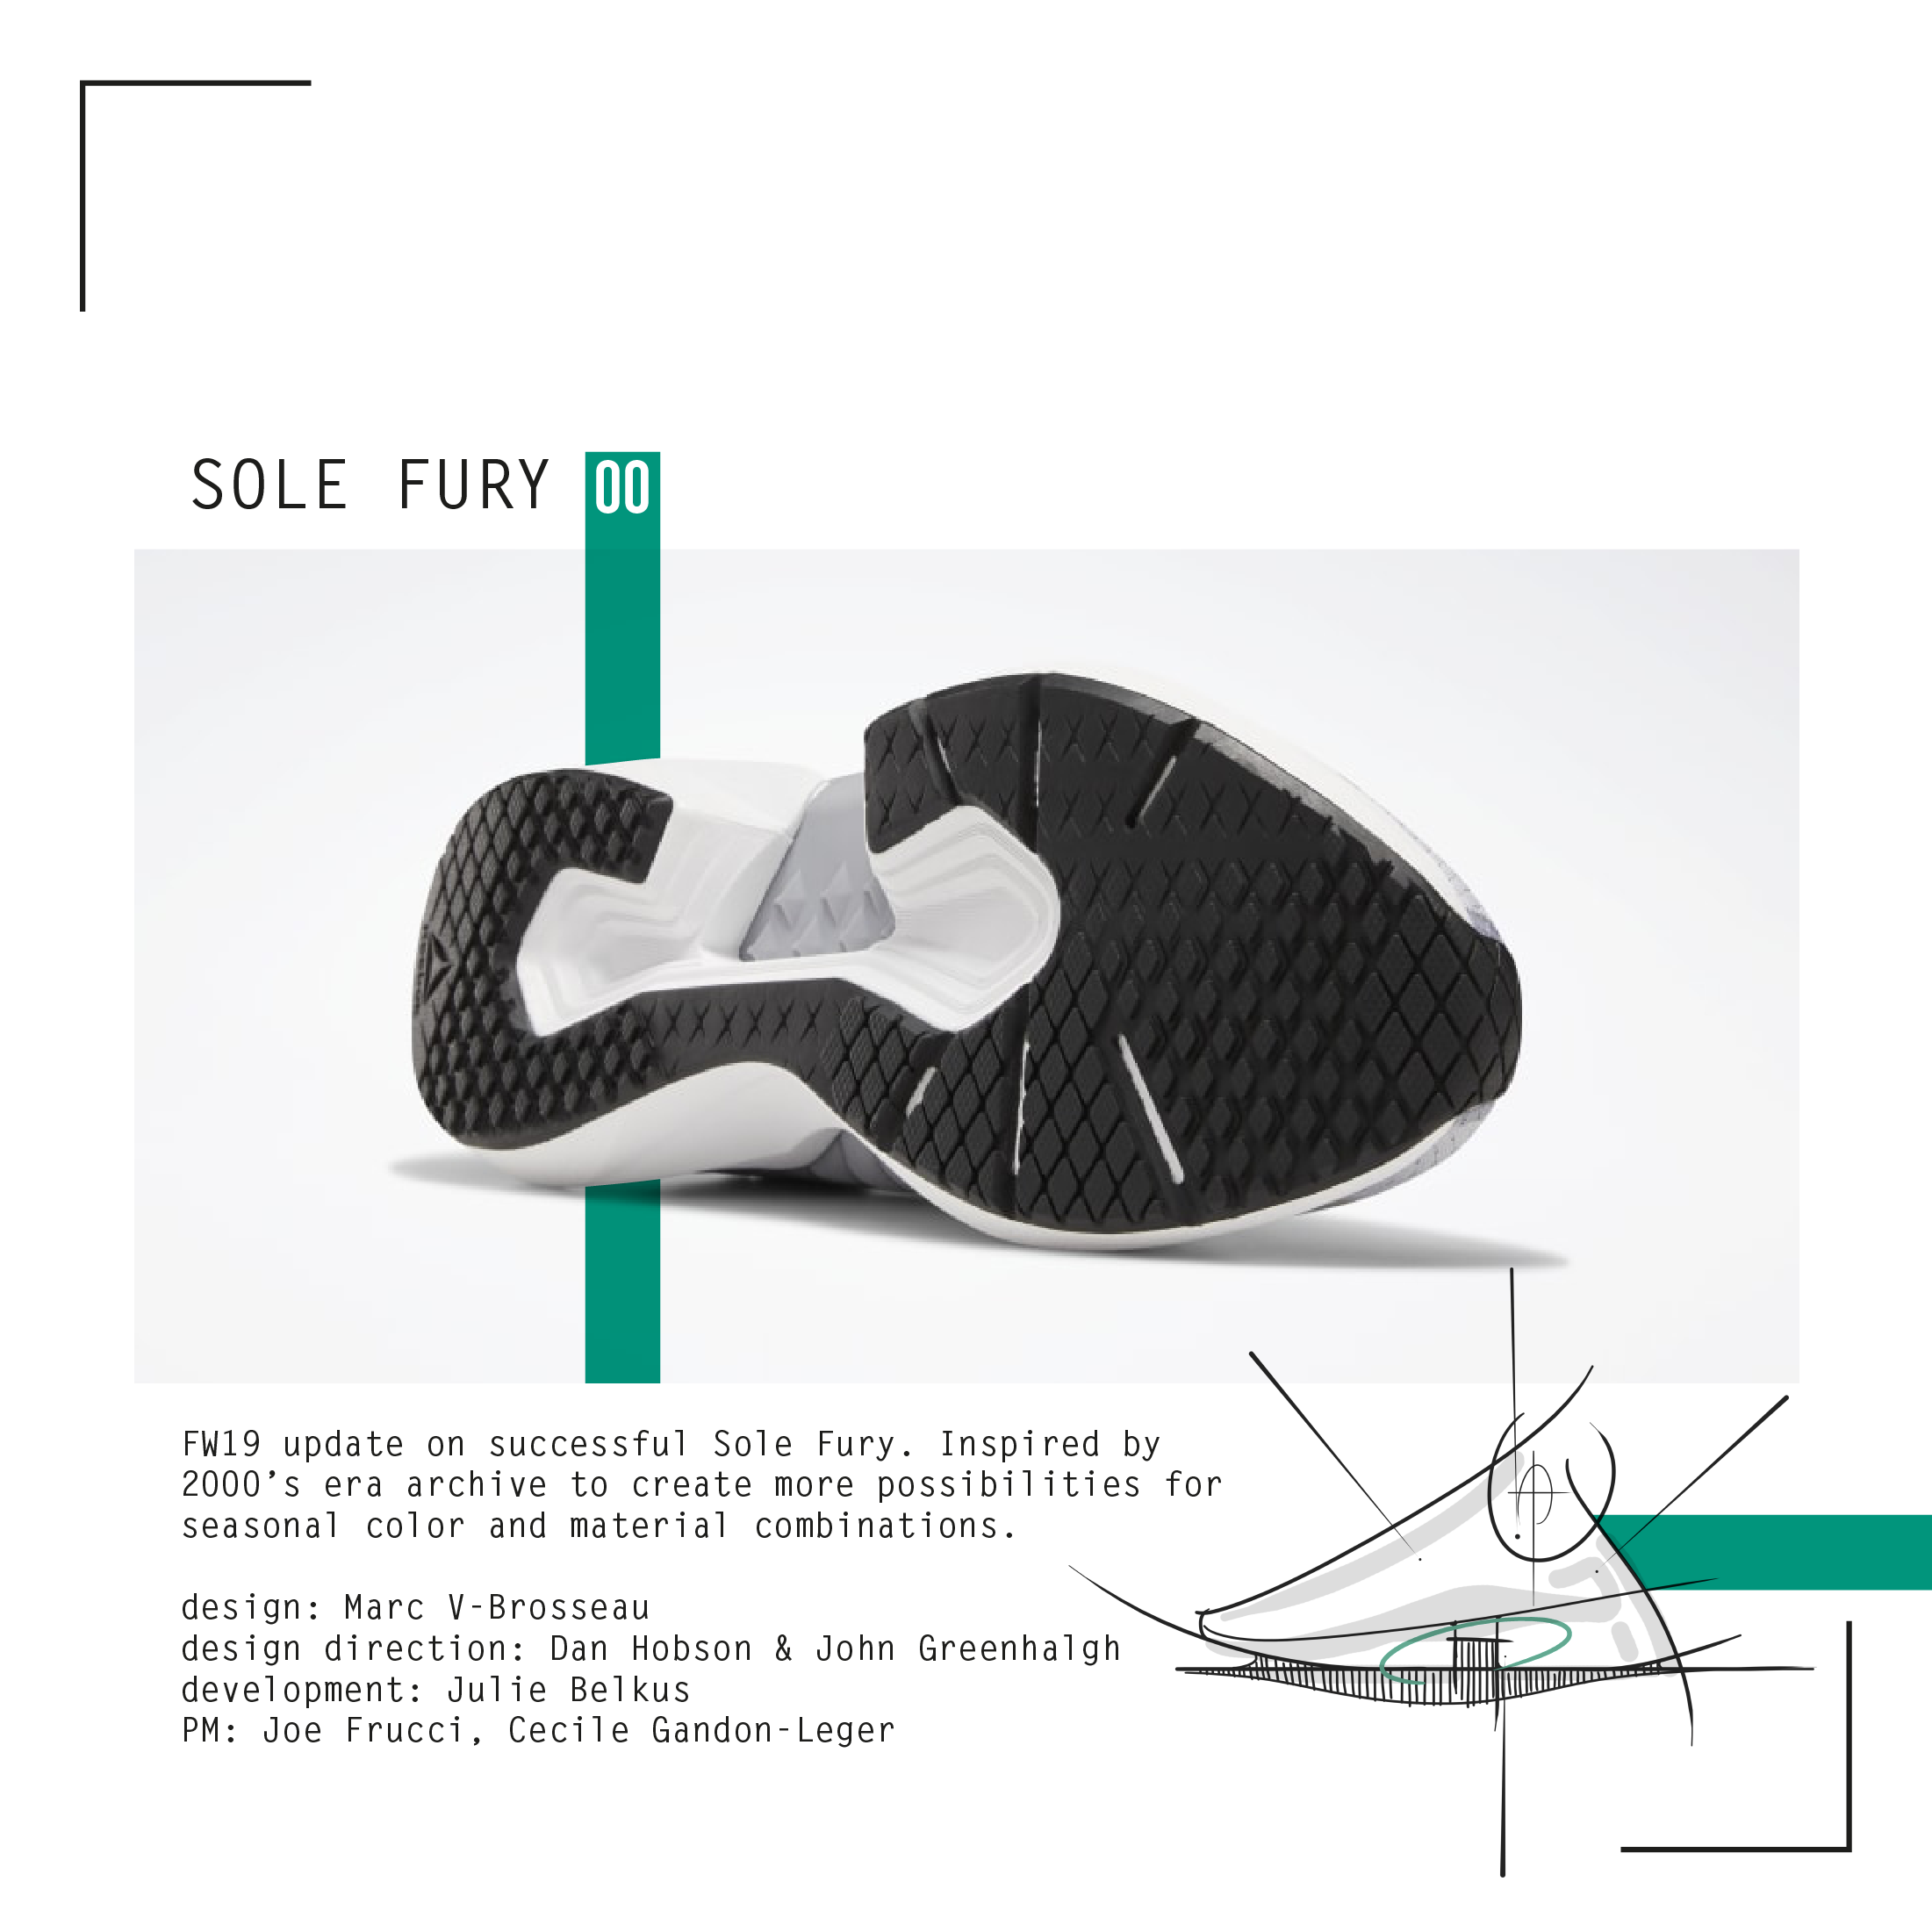 sole fury 00Artboard 1behance.png